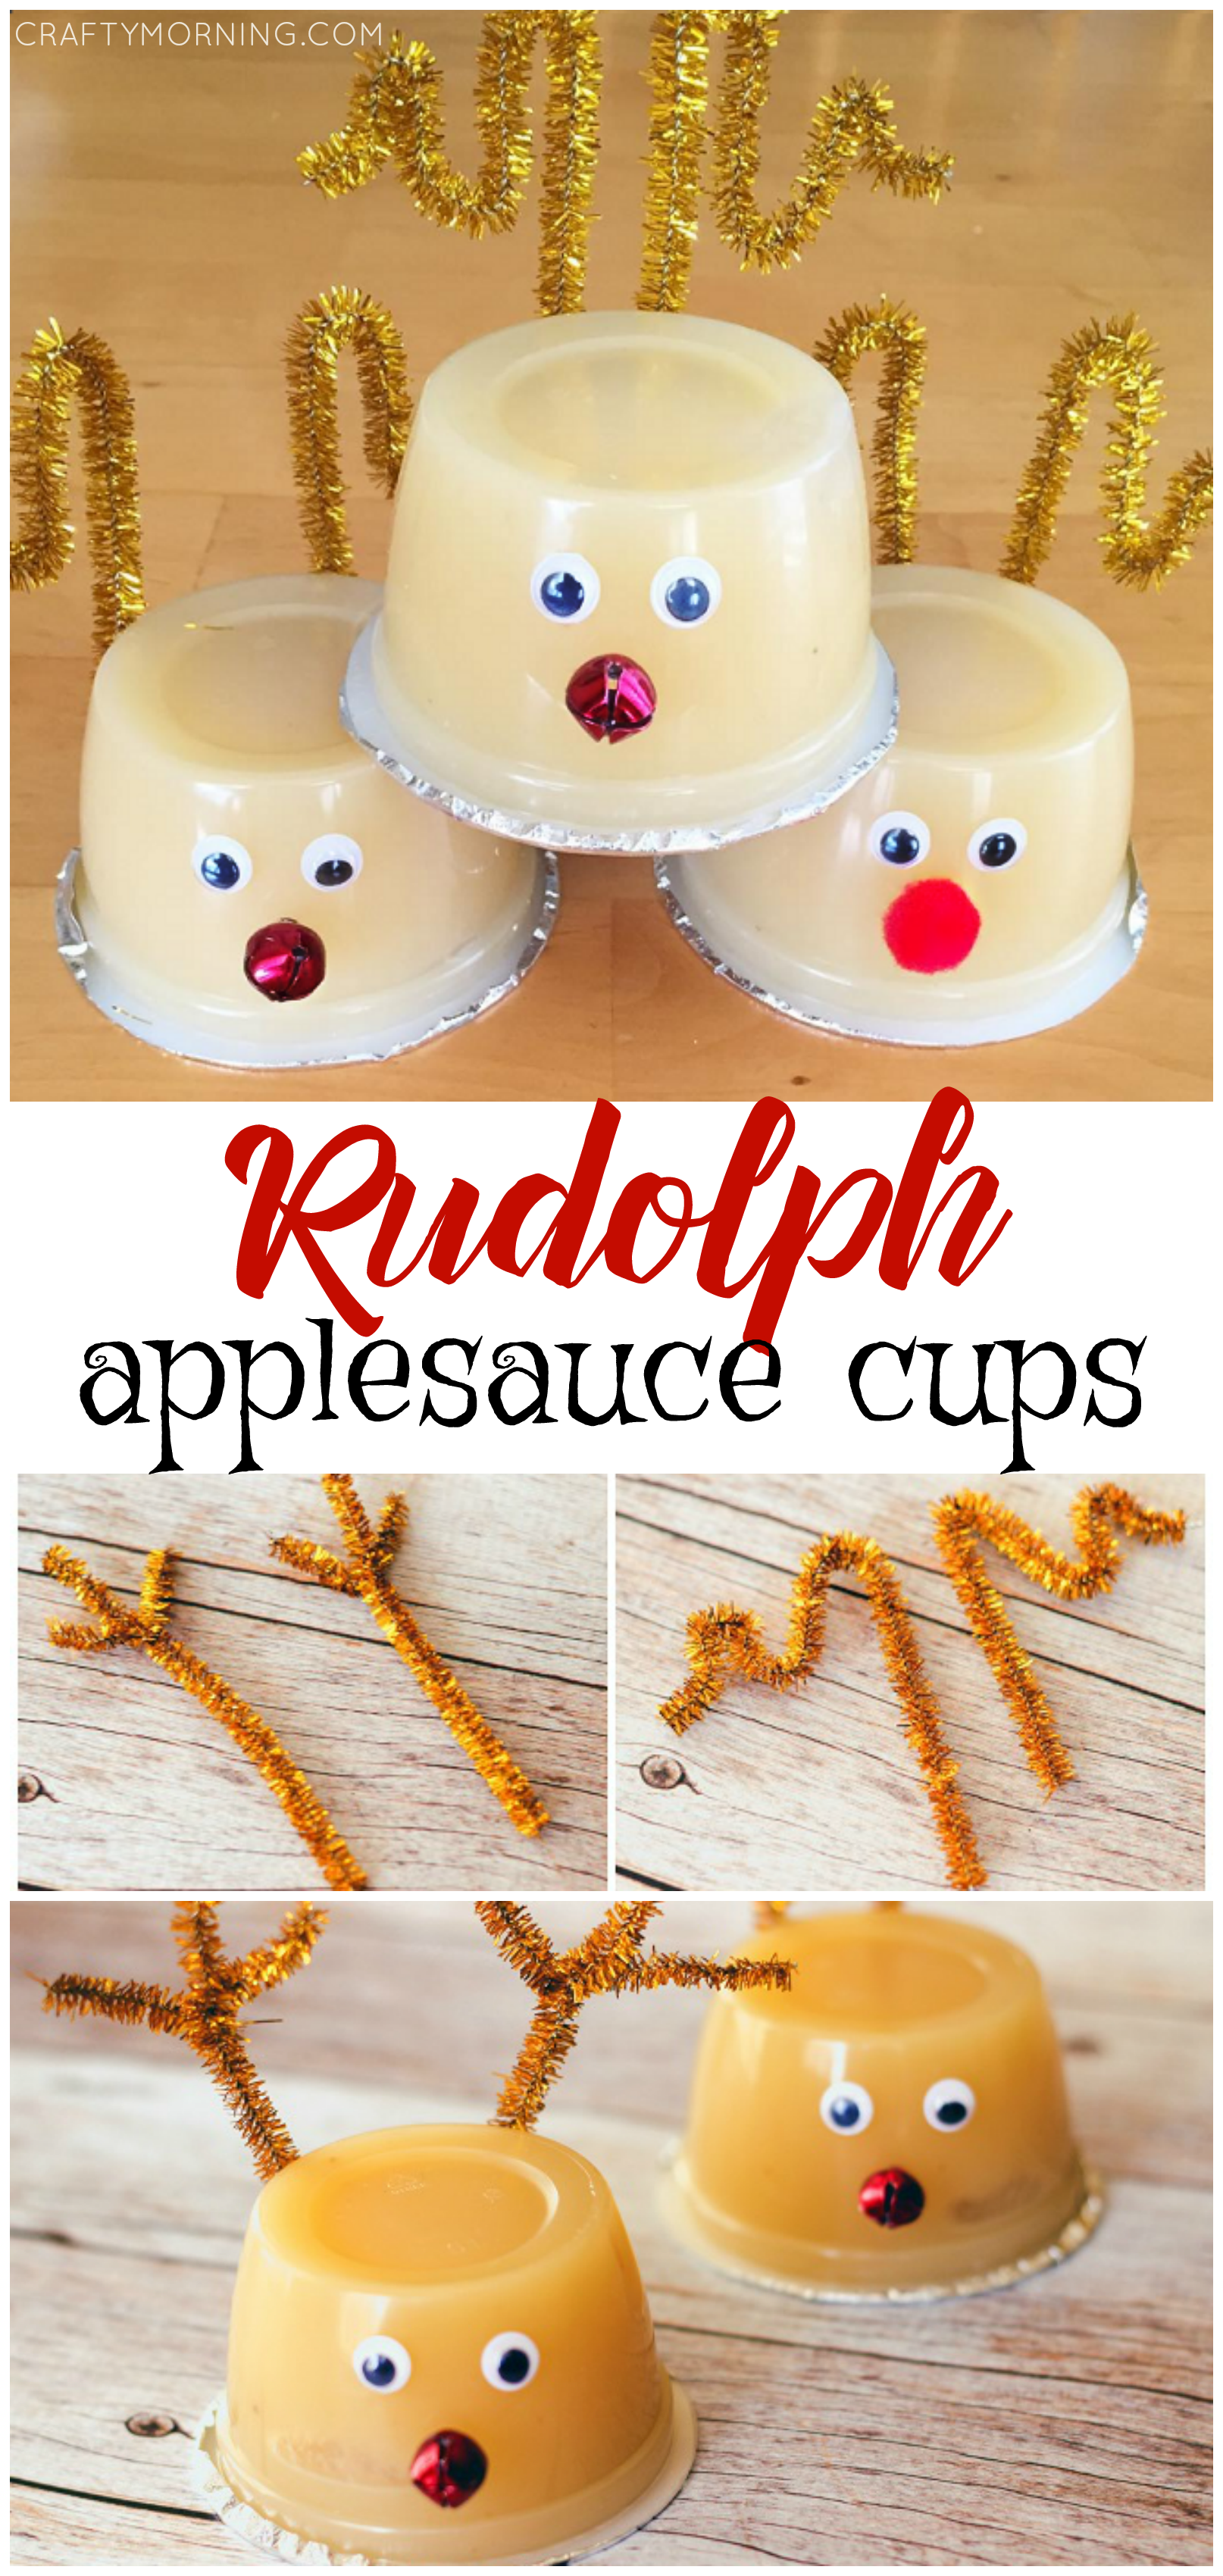 Make Adorable Rudolph The Reindeer Applesauce Cups For A Kids